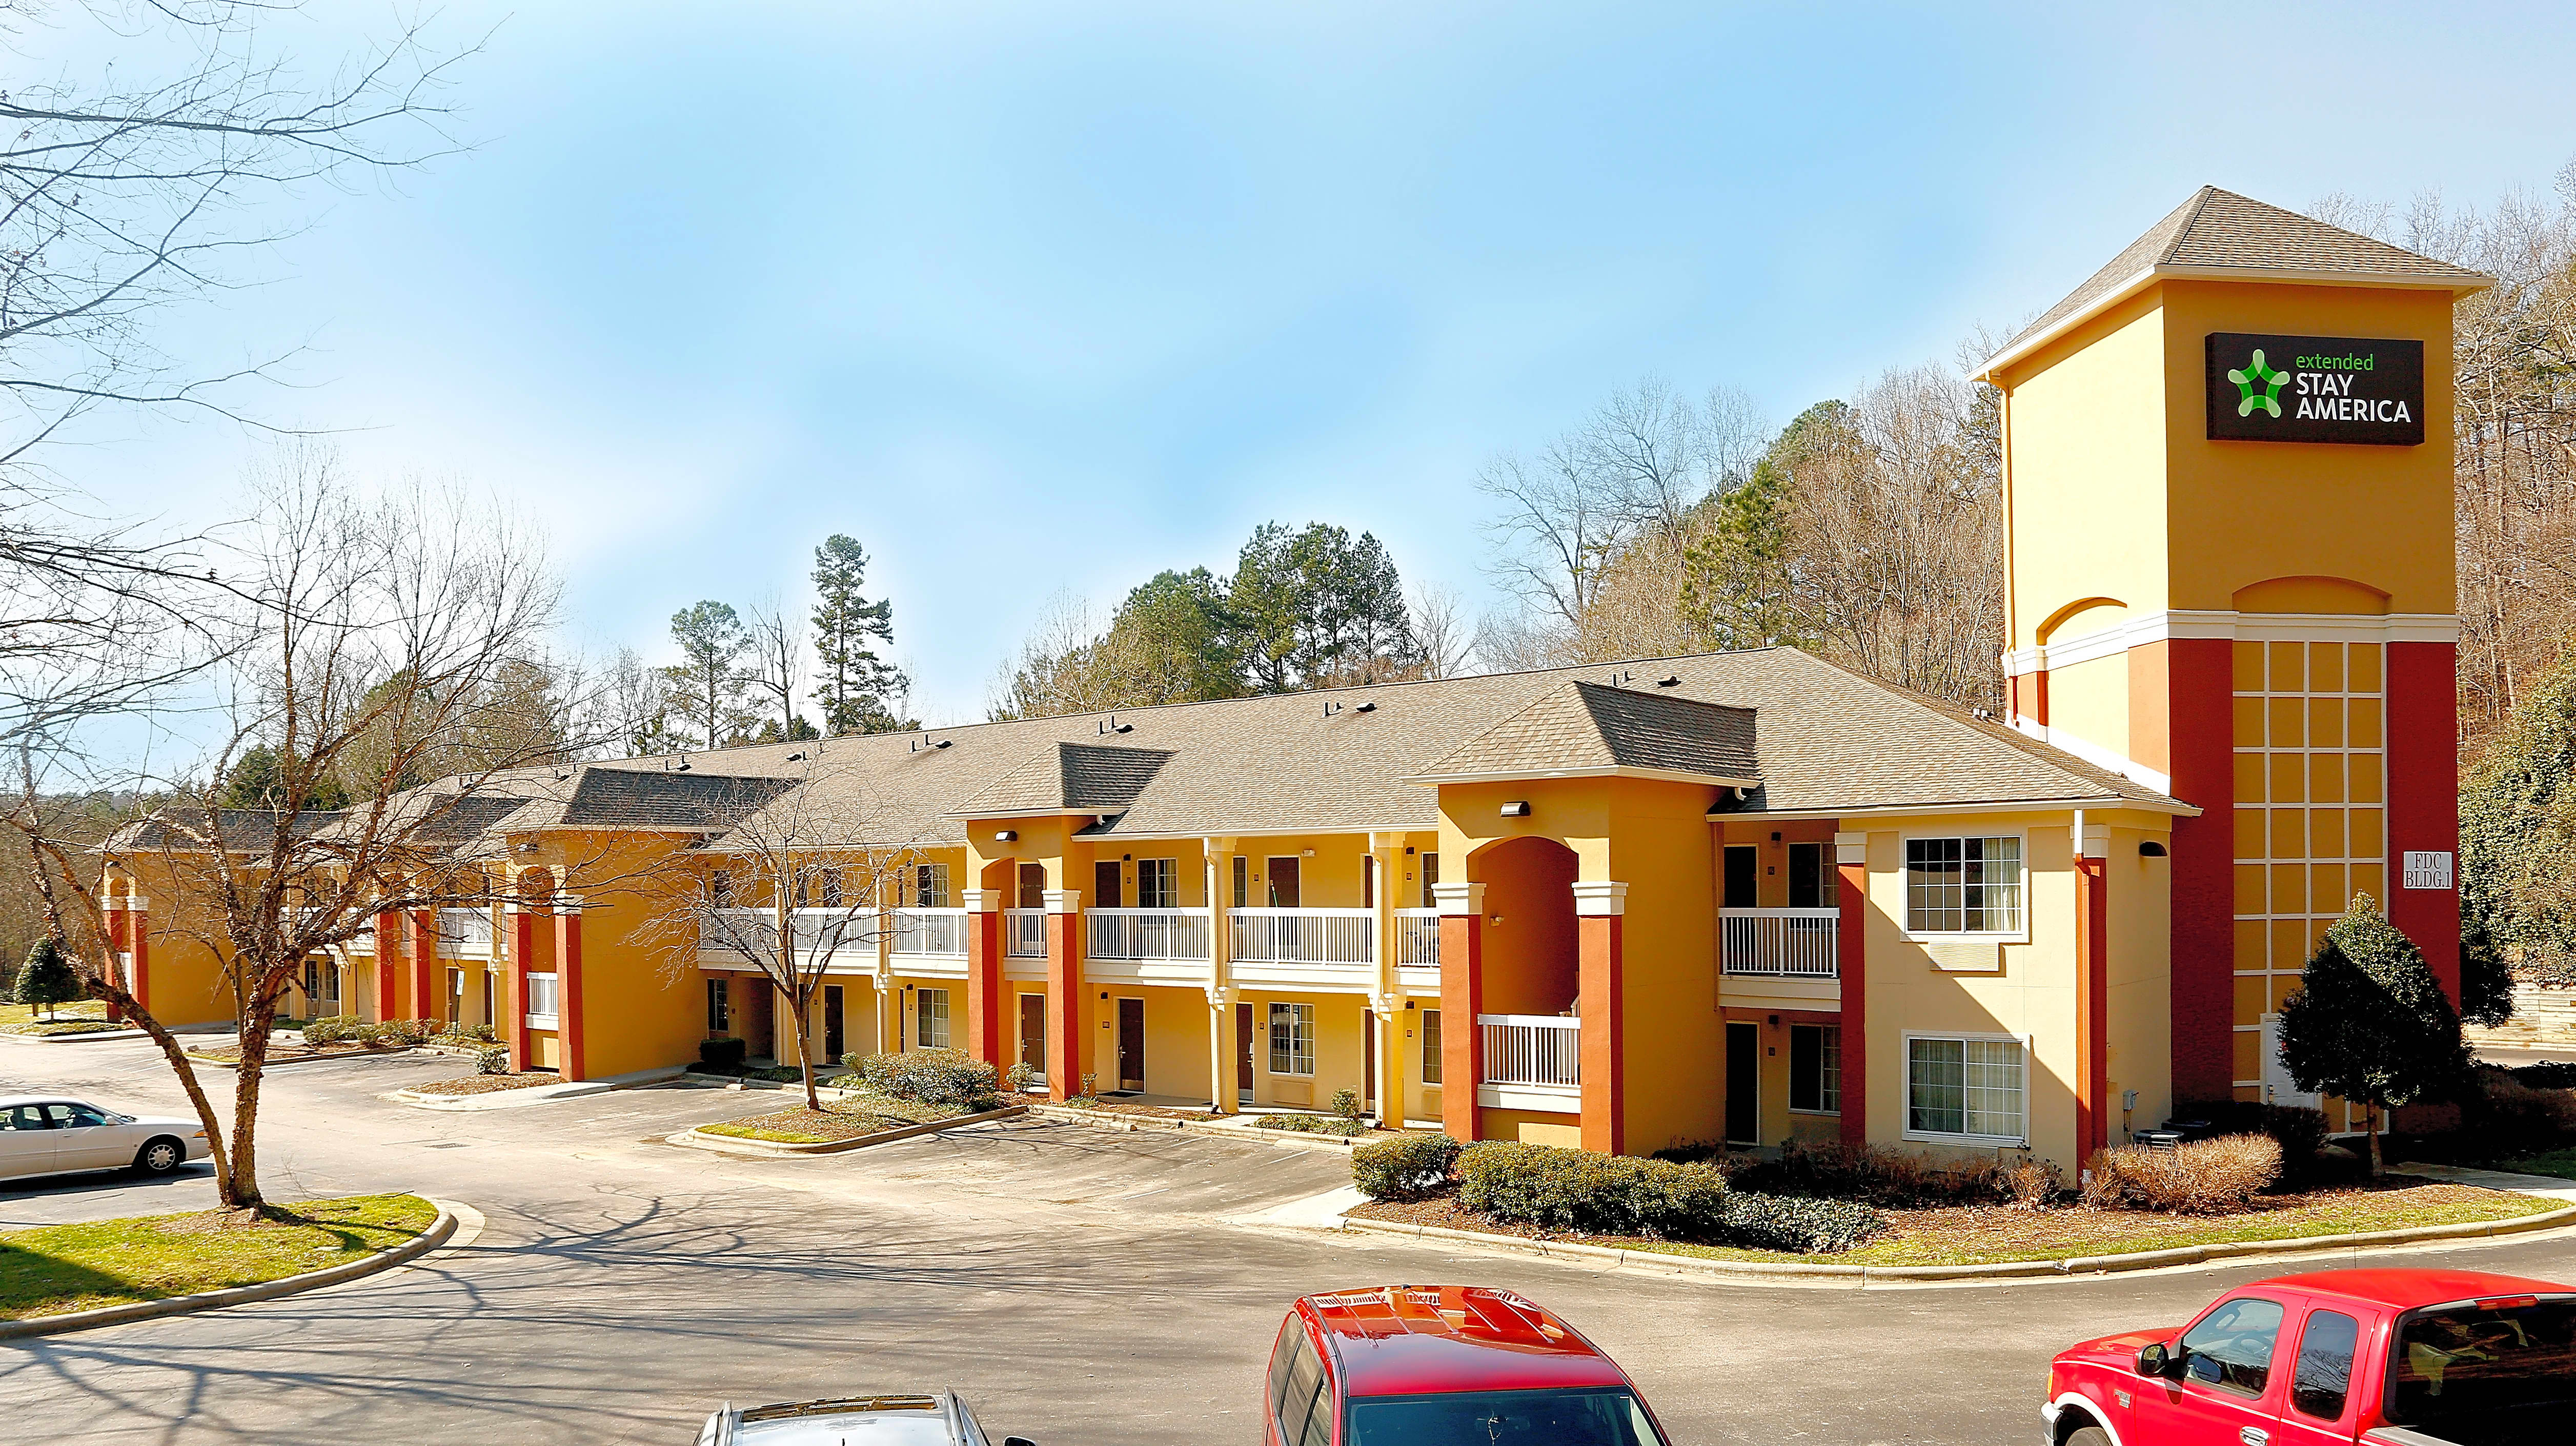 Apartments Near NC State Furnished Studio - Raleigh - Crabtree Valley for North Carolina State University Students in Raleigh, NC